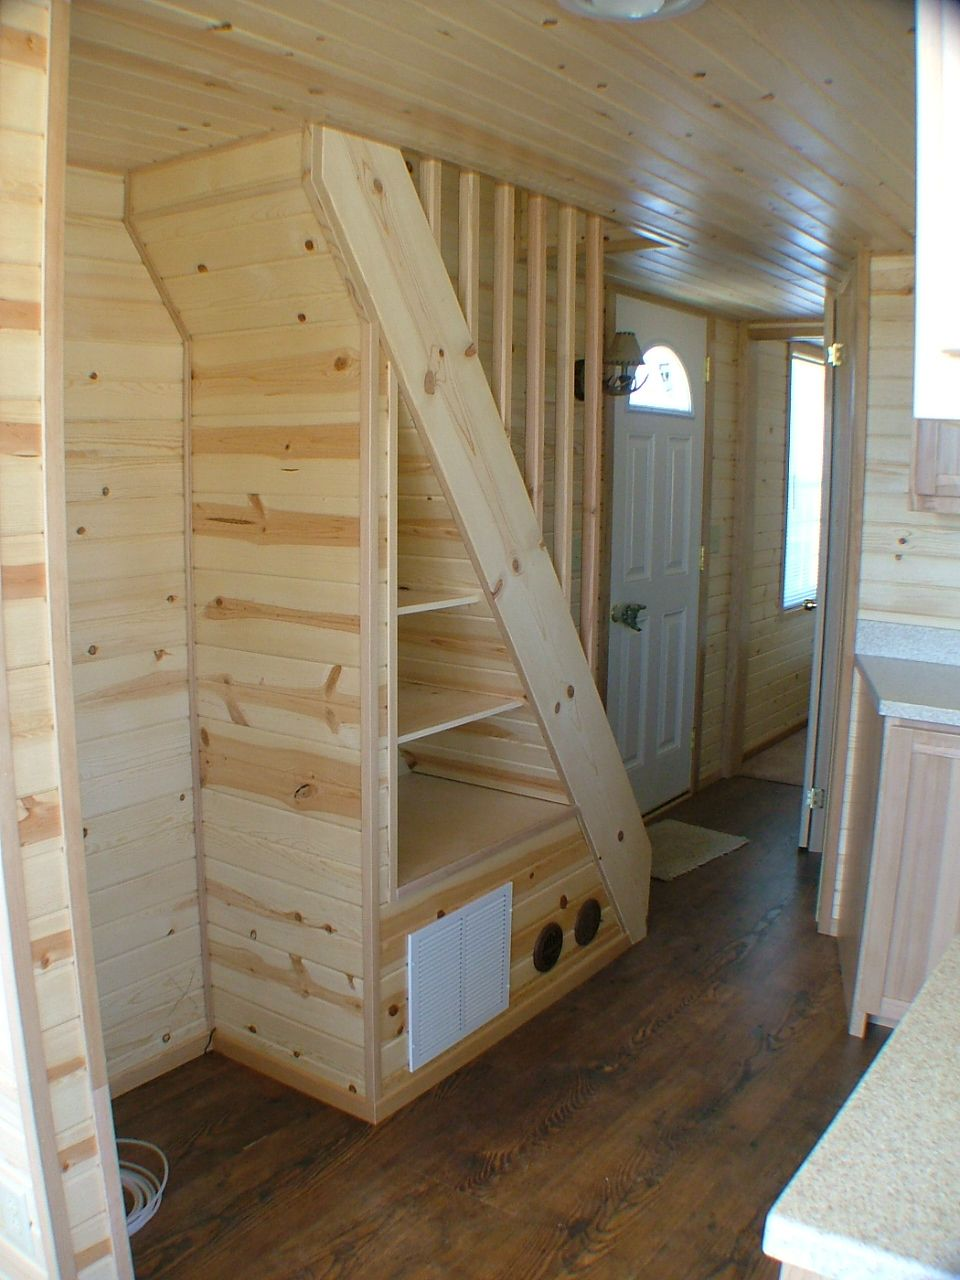 Hergert   Rich The Cabin Man   Tiny House With Built In Stairs / Storage U0026 Propane  Heater Underneath  Real Stair Not A Ladder!